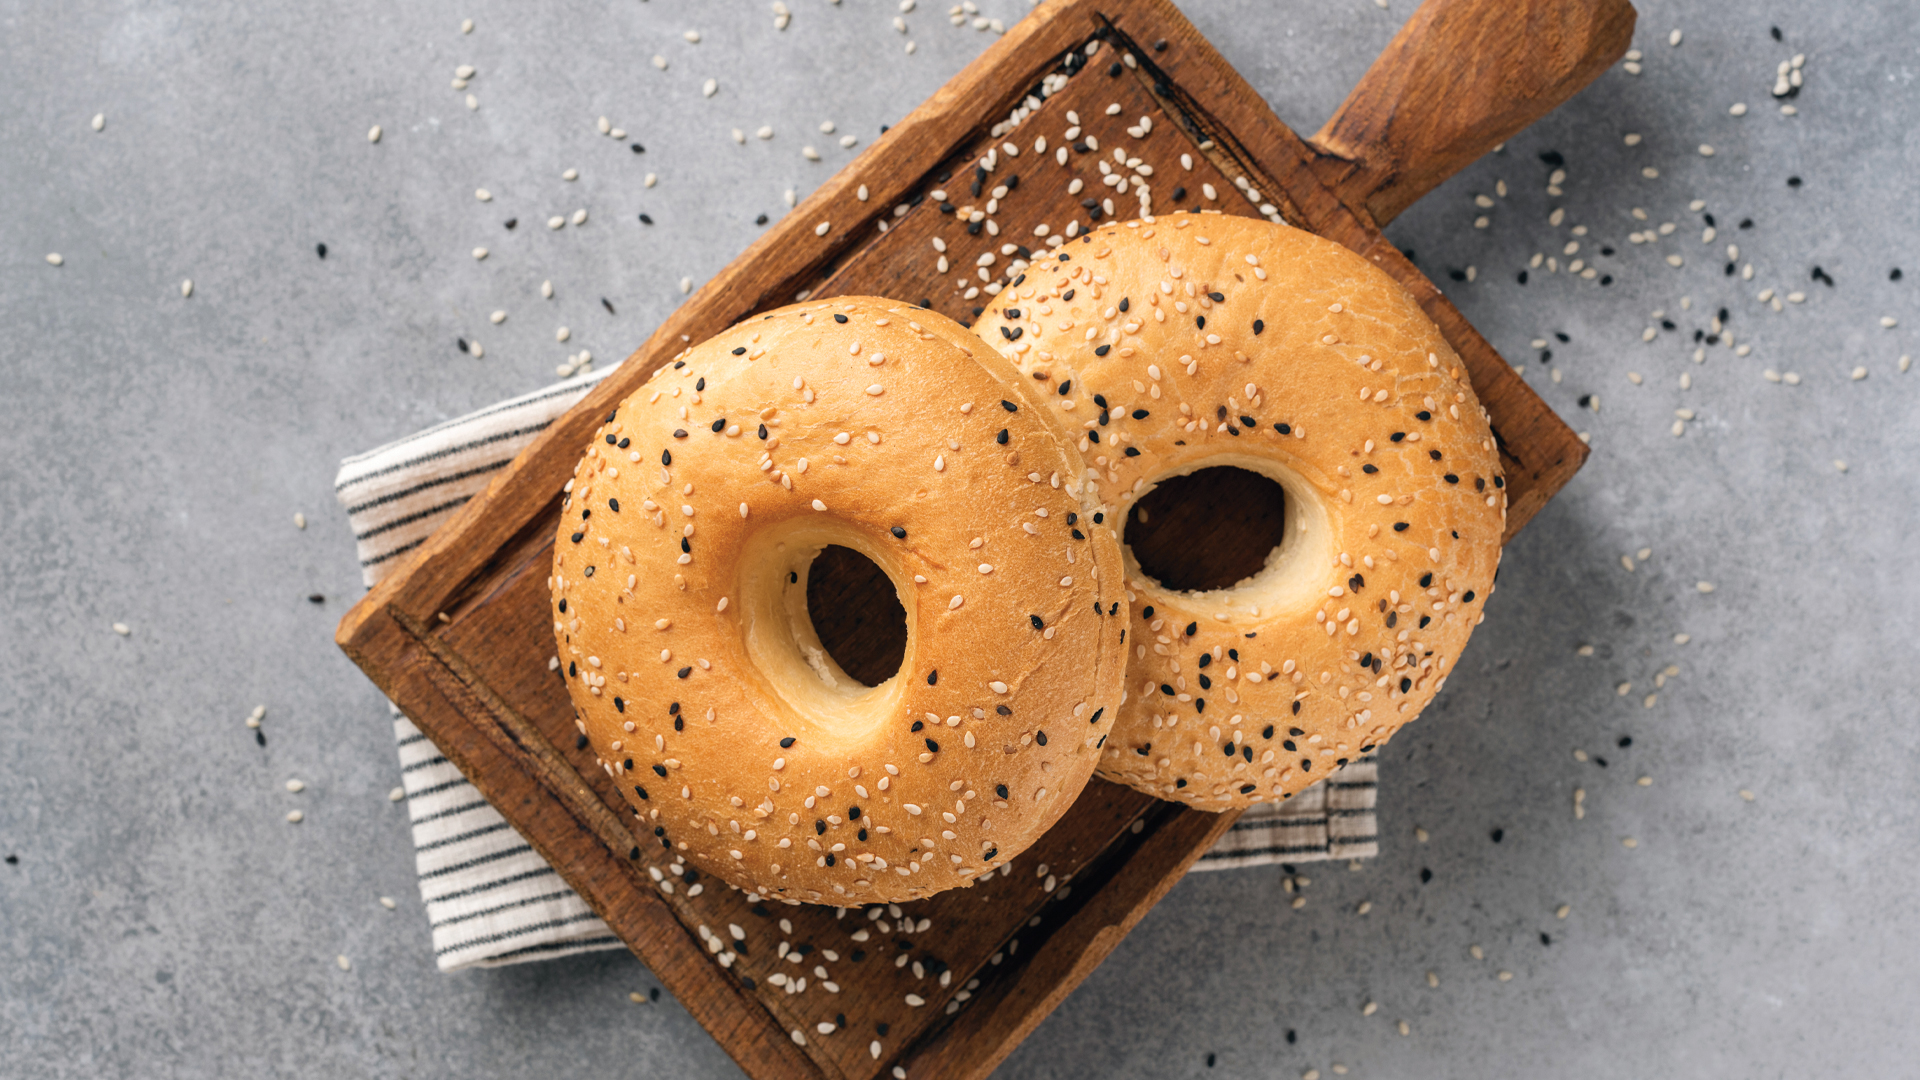 Biden Signs FASTER ACT, Bringing Sesame One Step Closer to Being Labelled as the 9th Major Allergen